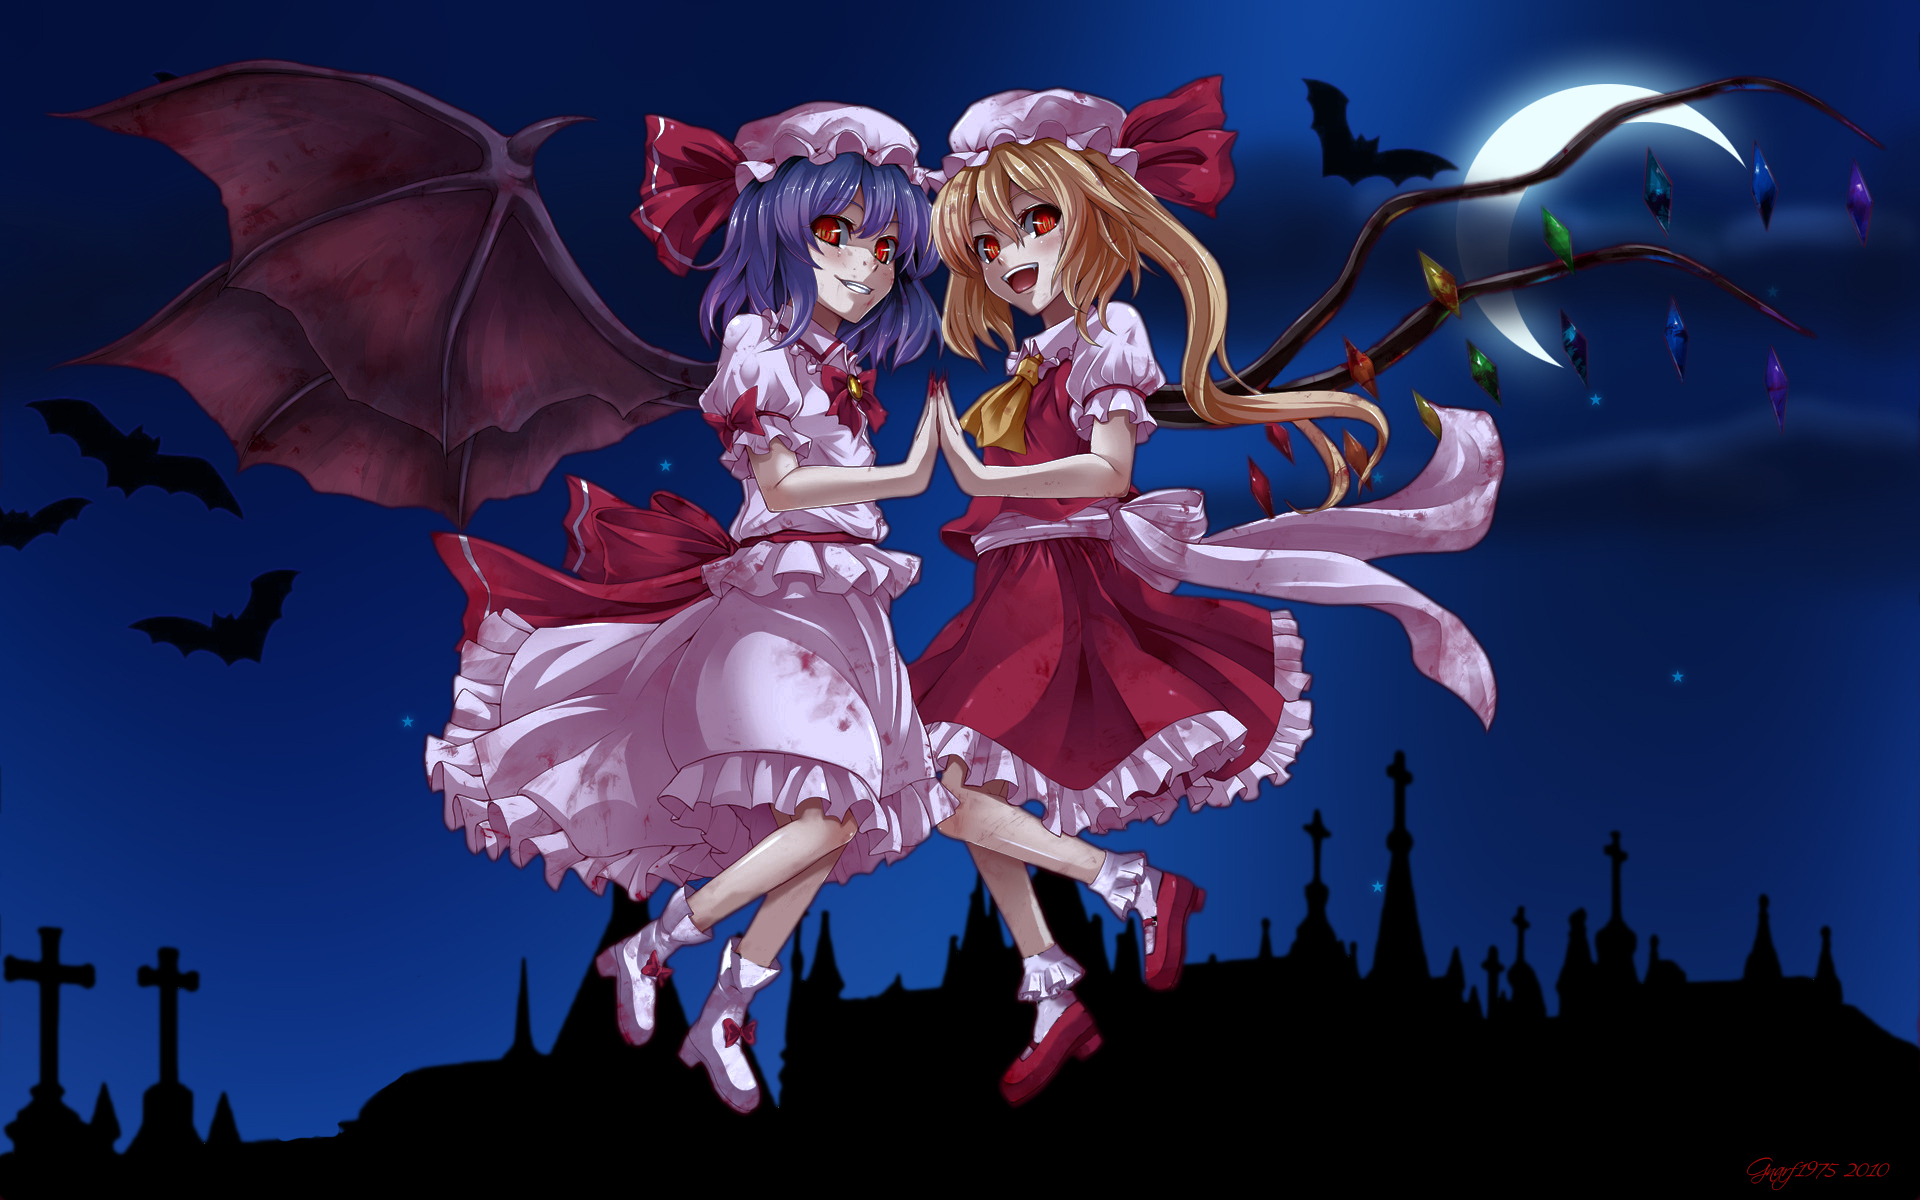 2girls animal asu_hare bat blonde_hair blood dress flandre_scarlet hat moon night photoshop ponytail purple_hair red_eyes remilia_scarlet short_hair signed touhou vampire wings